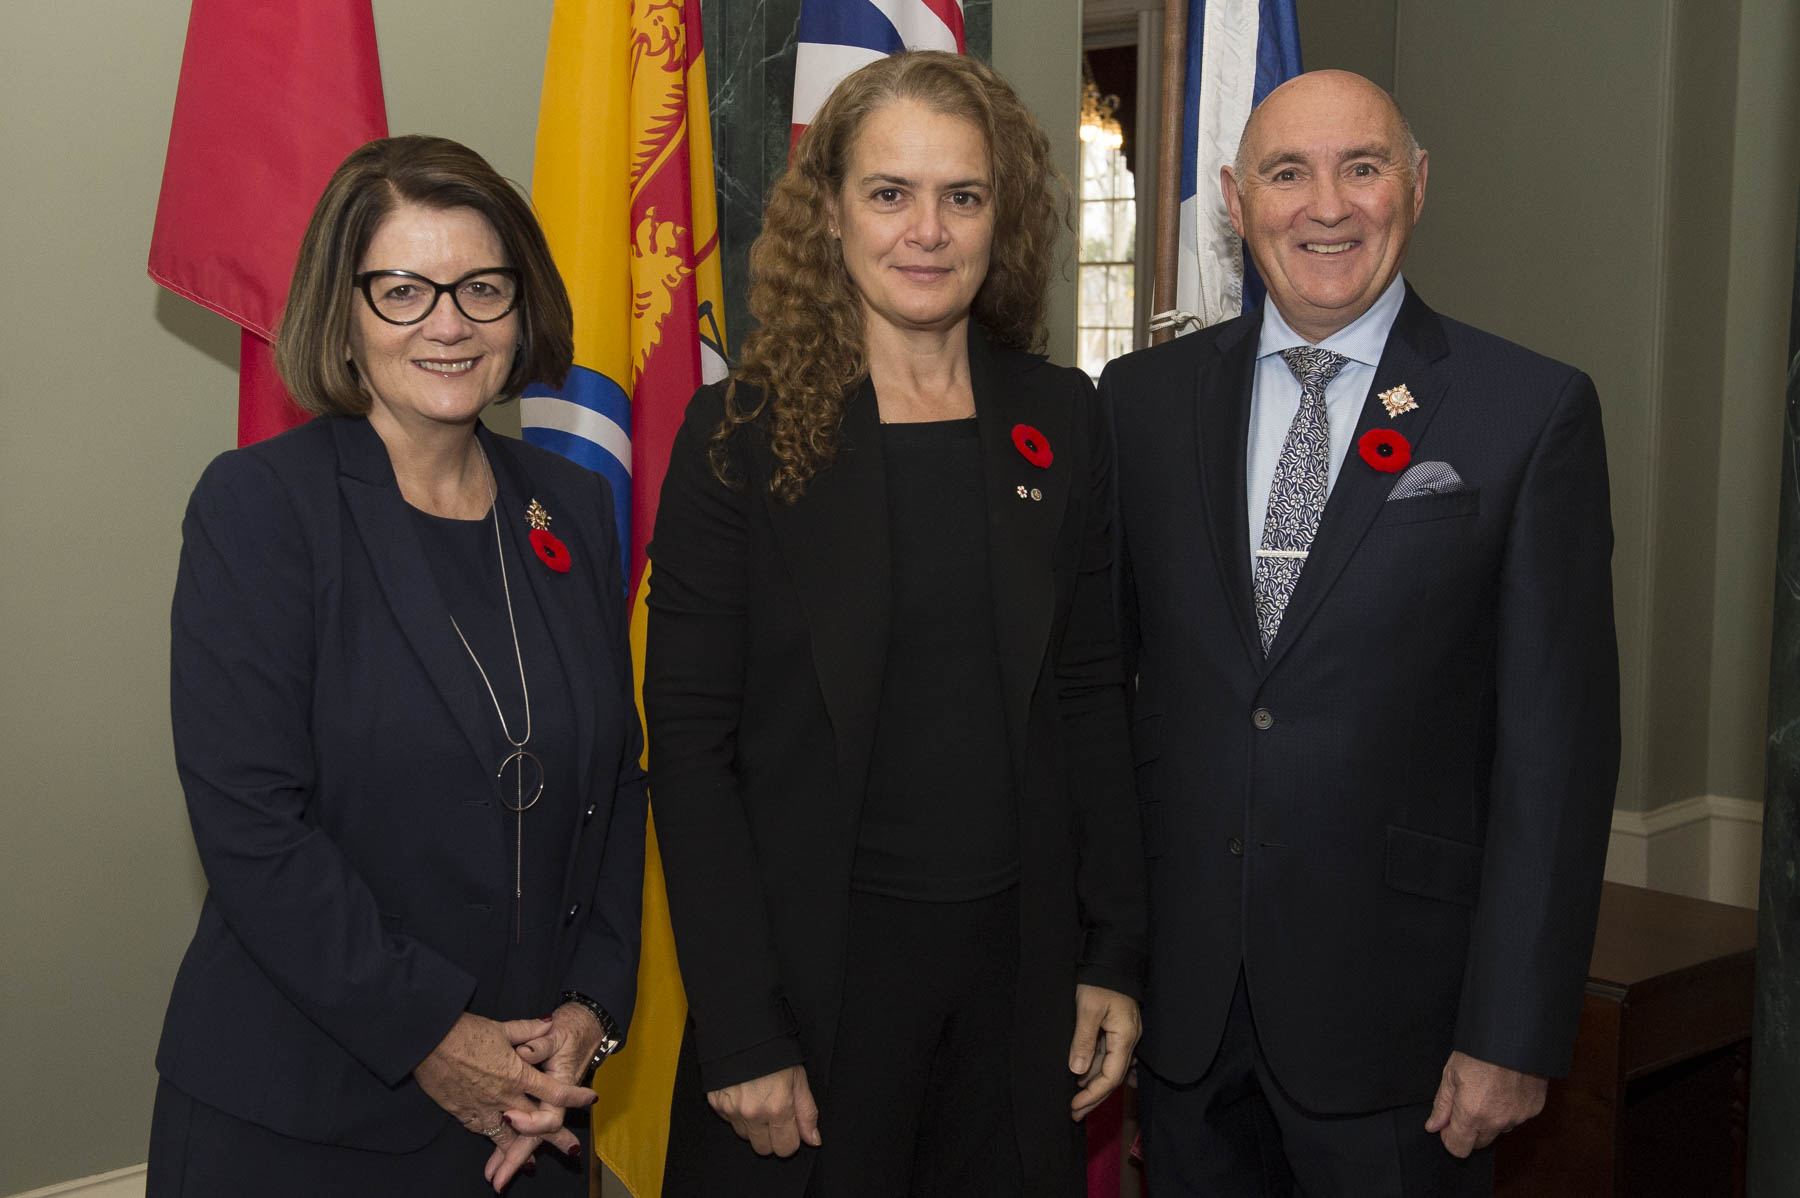 Upon arrival in Fredericton, the Governor General met with Their Honours the Honourable Jocelyne Roy Vienneau, Lieutenant Governor of New Brunswick, and Mr. Ronald Vienneau.